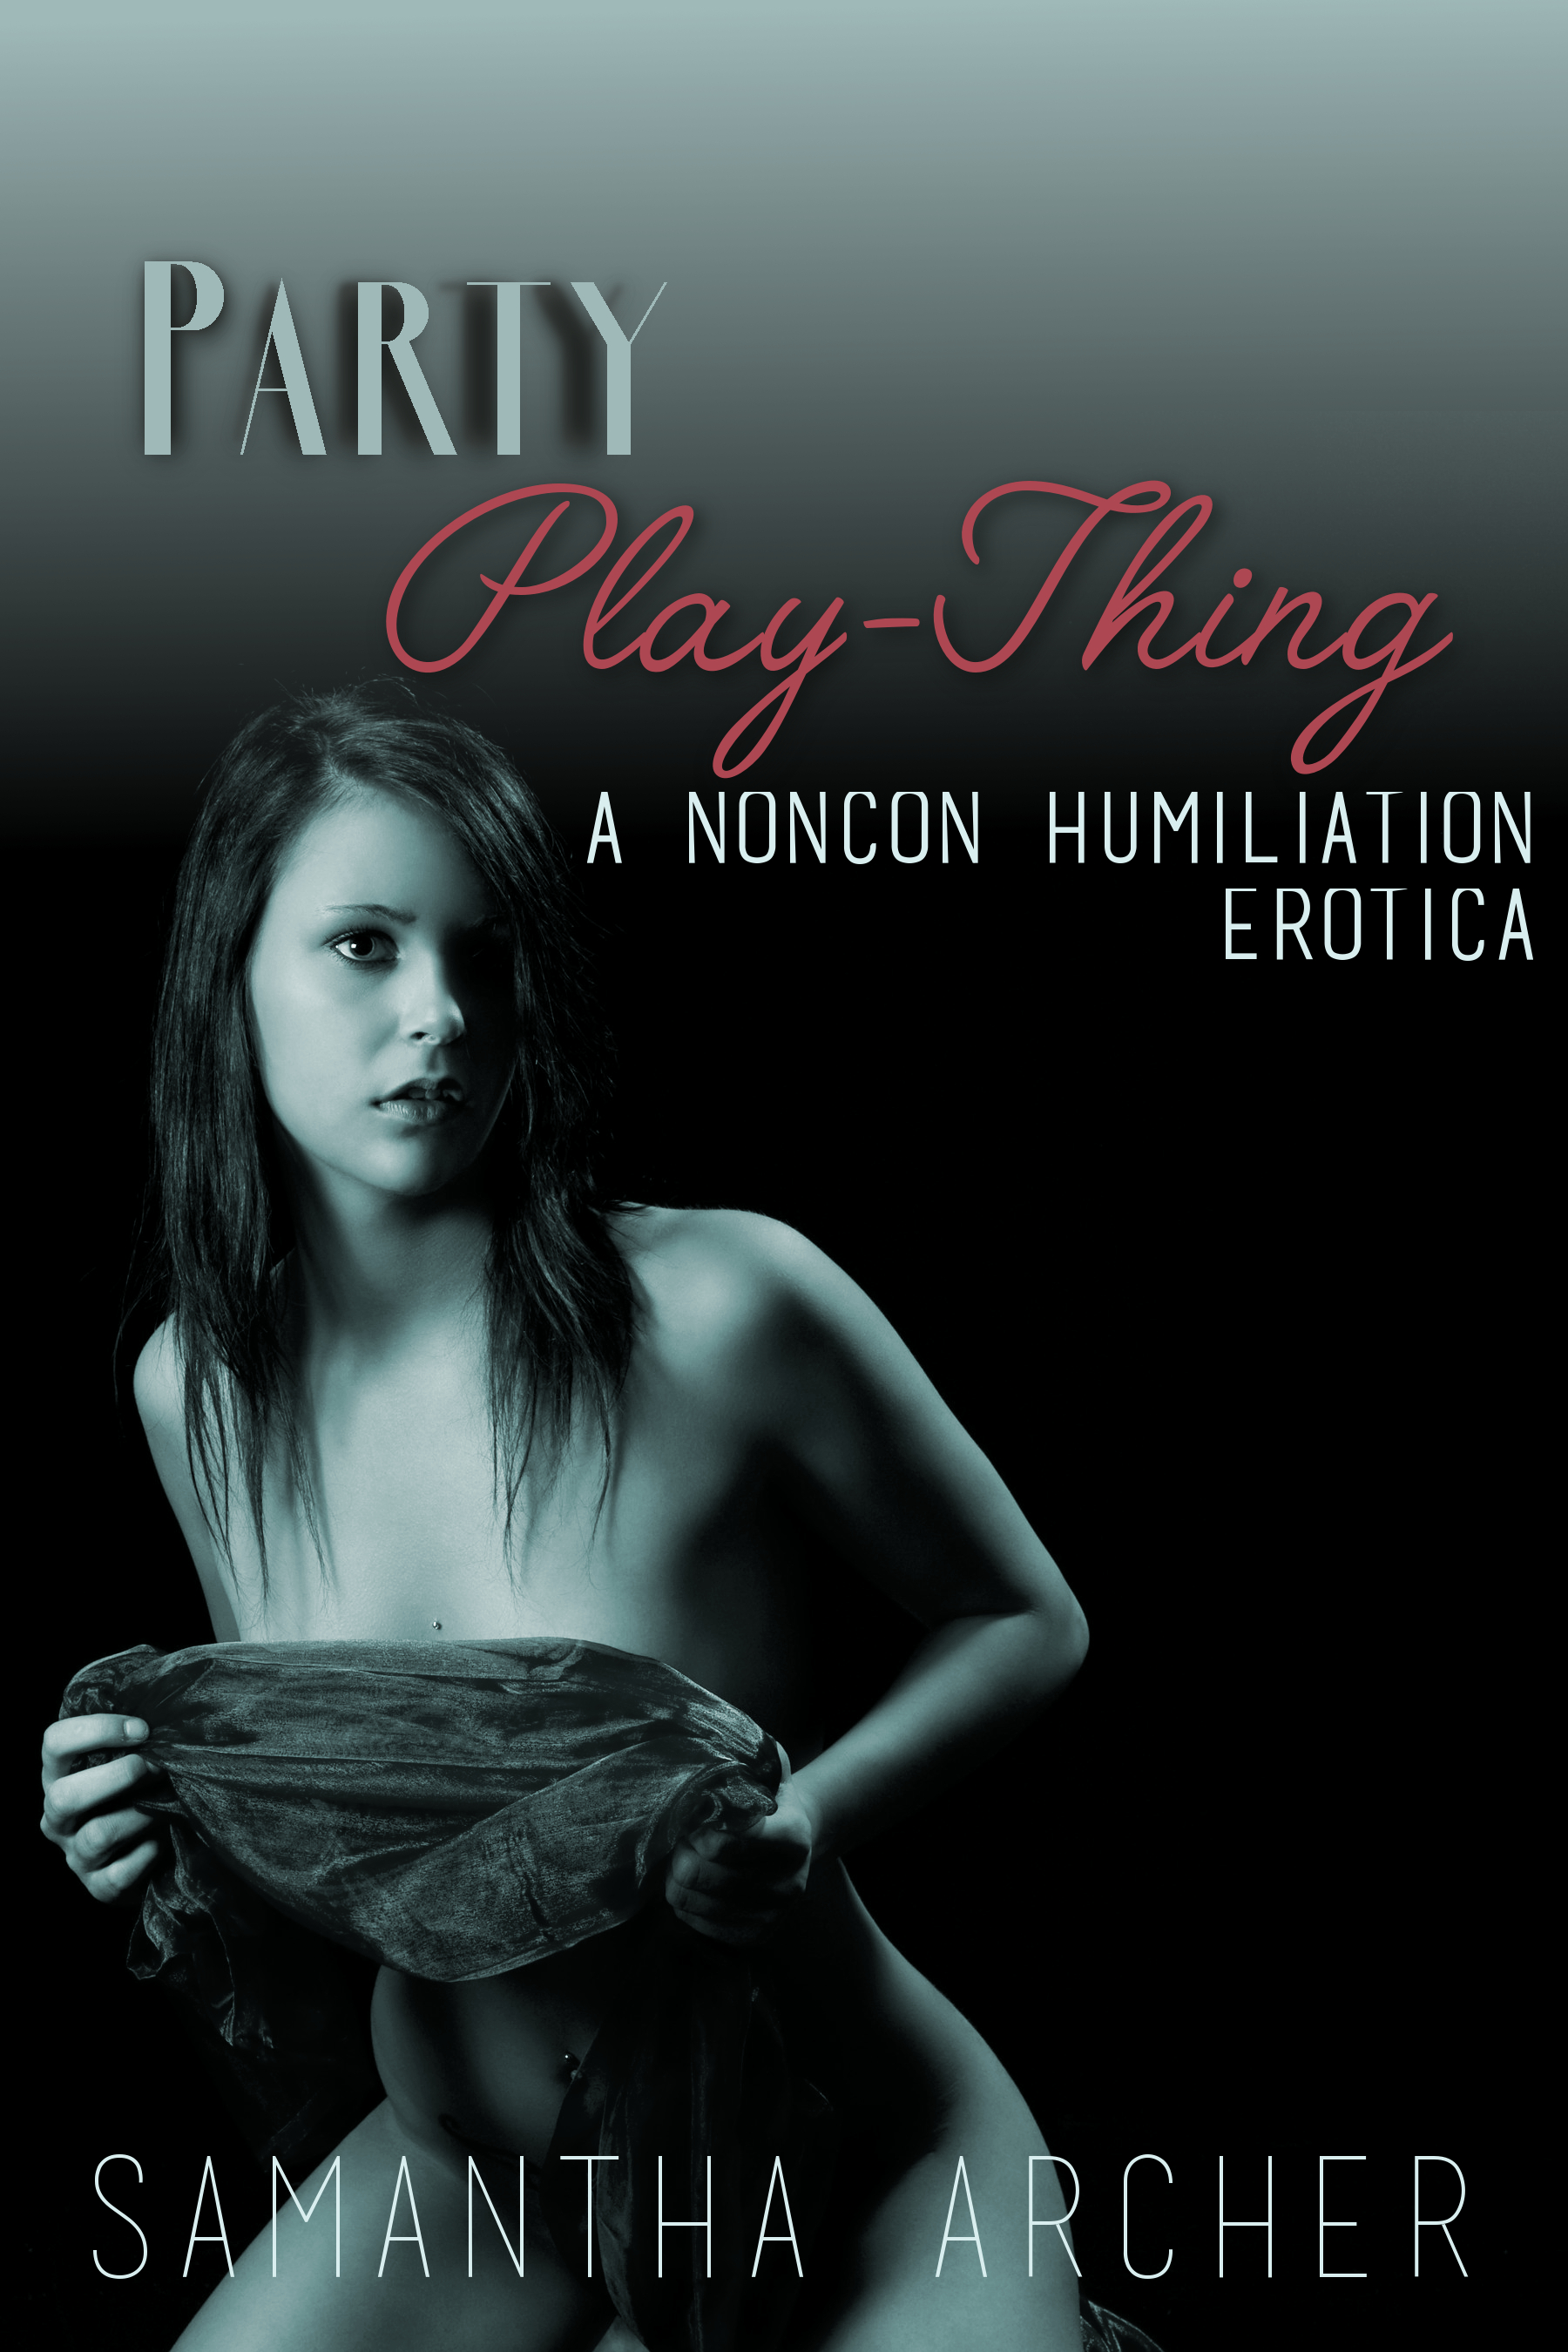 Party Play-thing: A Noncon Humiliation Erotica (Rape, abuse, nonconsent,  exhibitionism, gangbang, forced, exposure)